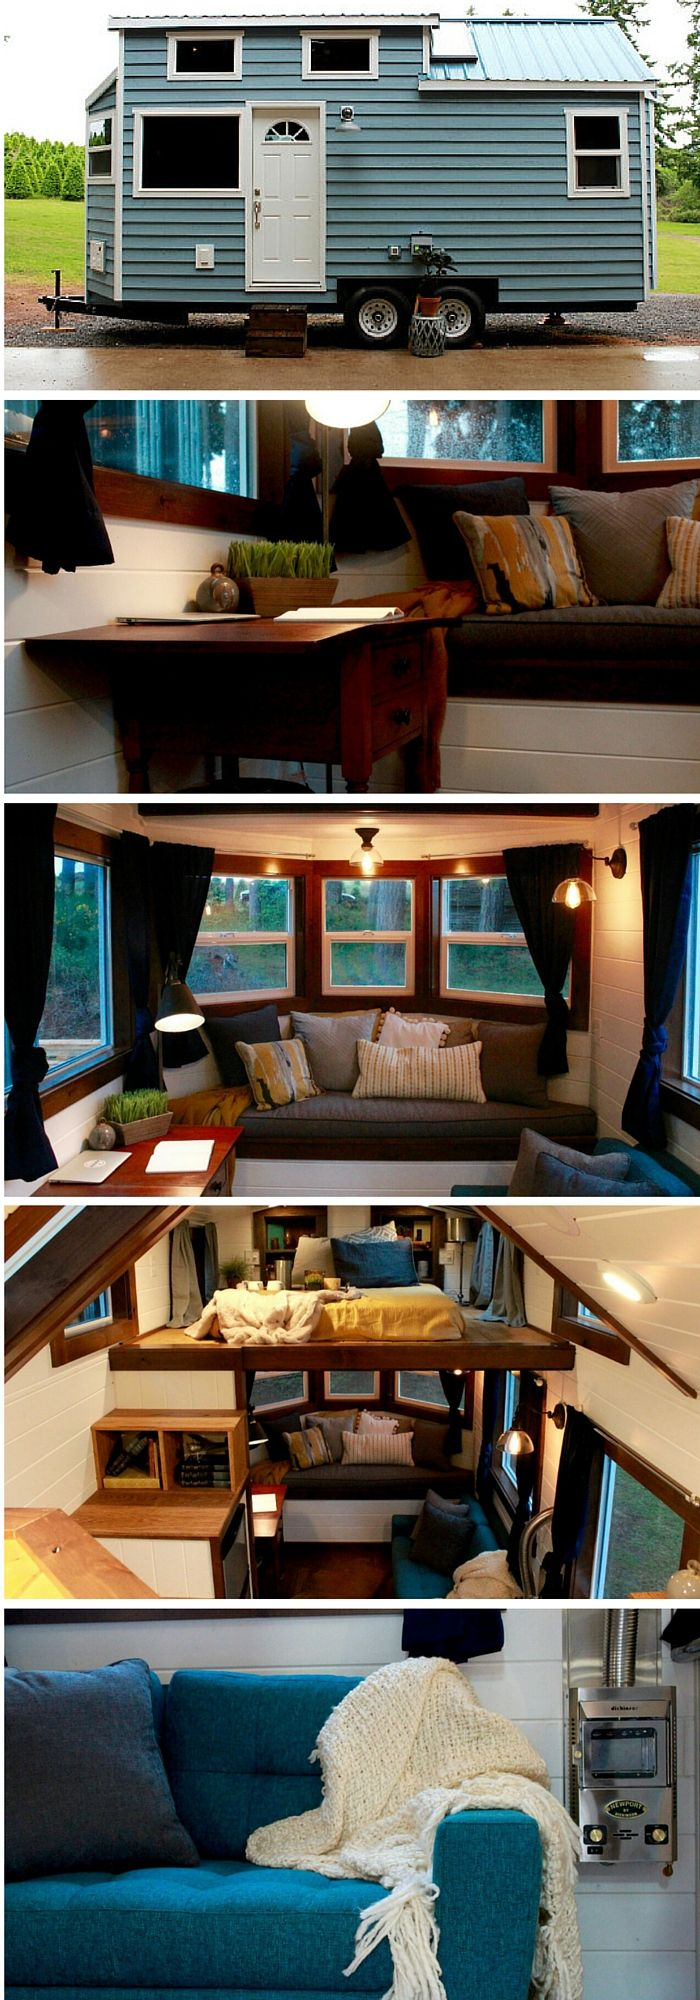 The Sapphire tiny house on wheels from Tiny Heirloom. The home measures just under 200 sq ft.